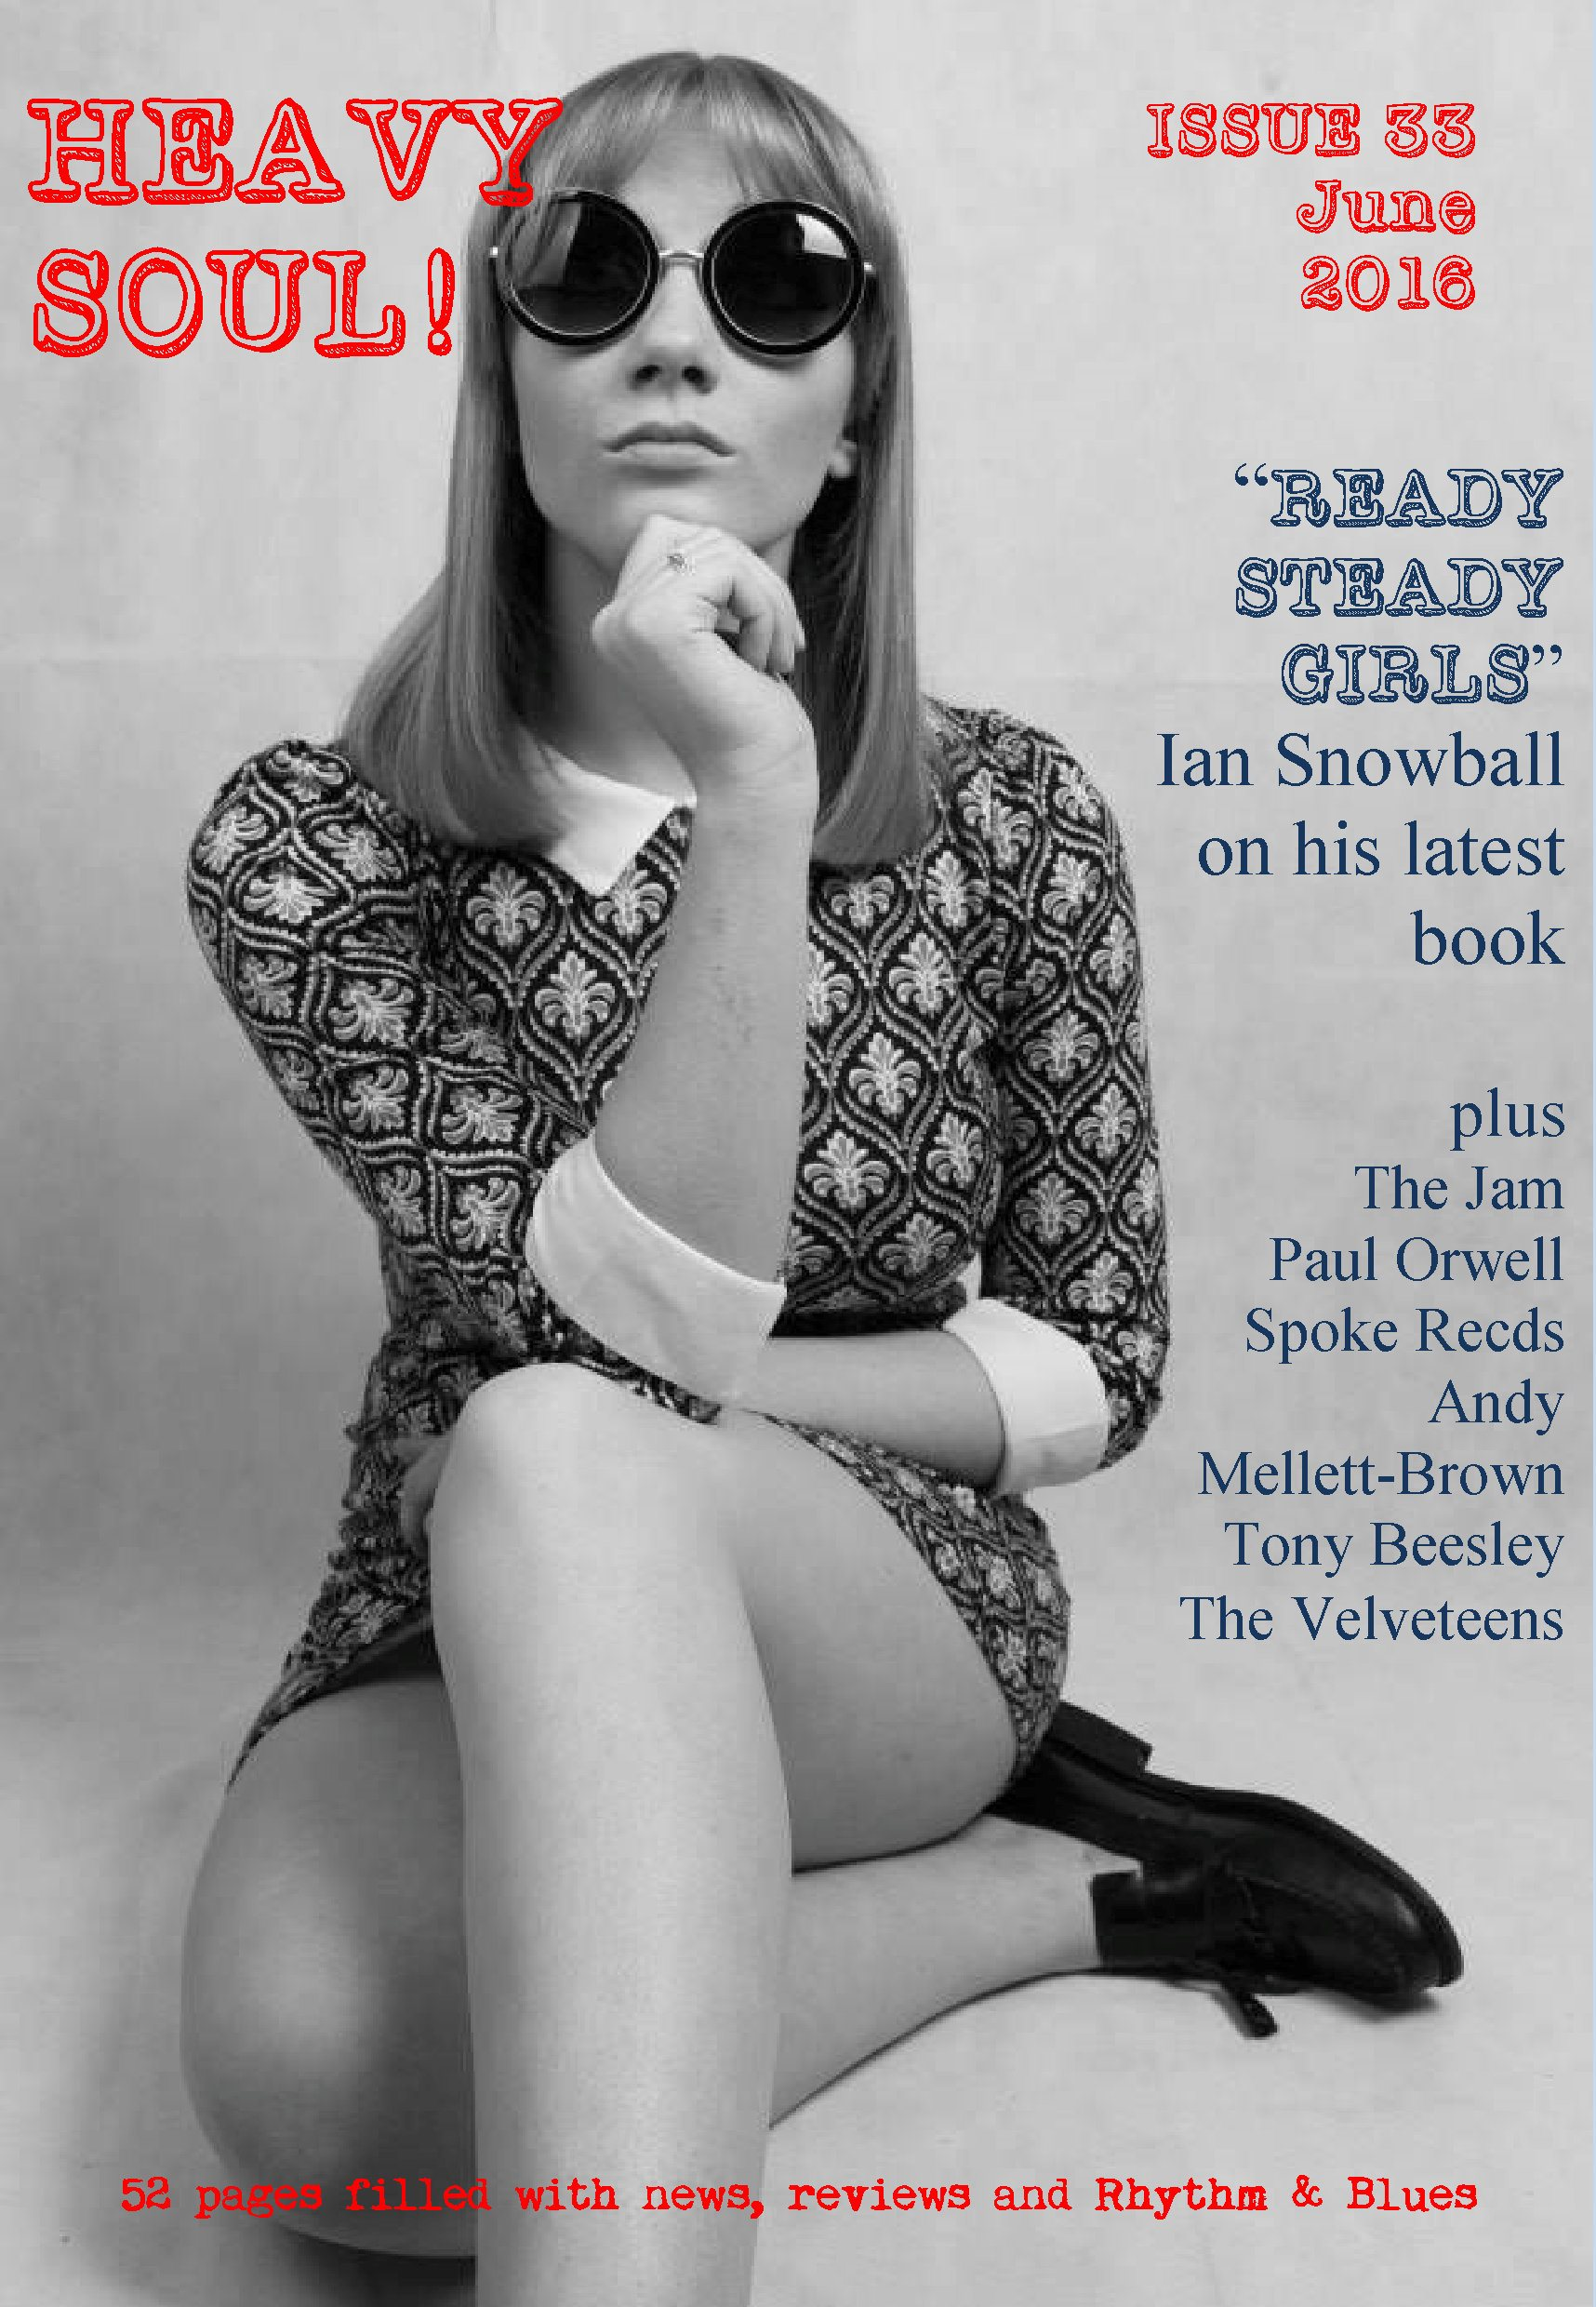 Heavy Soul! Modzine Issue 33